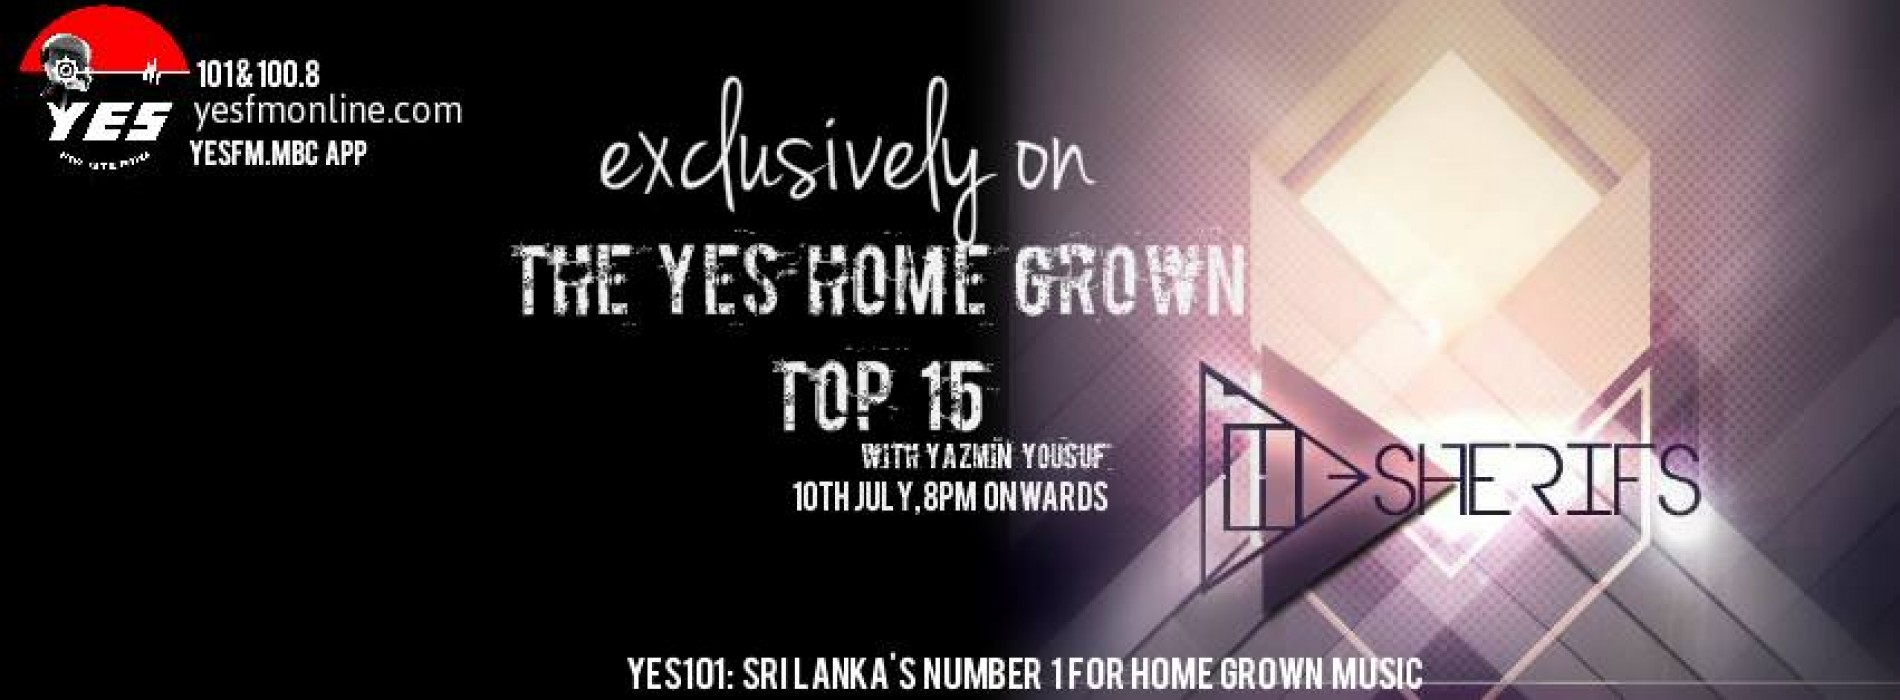 The Sherifs On The YES Home Grown Top 15